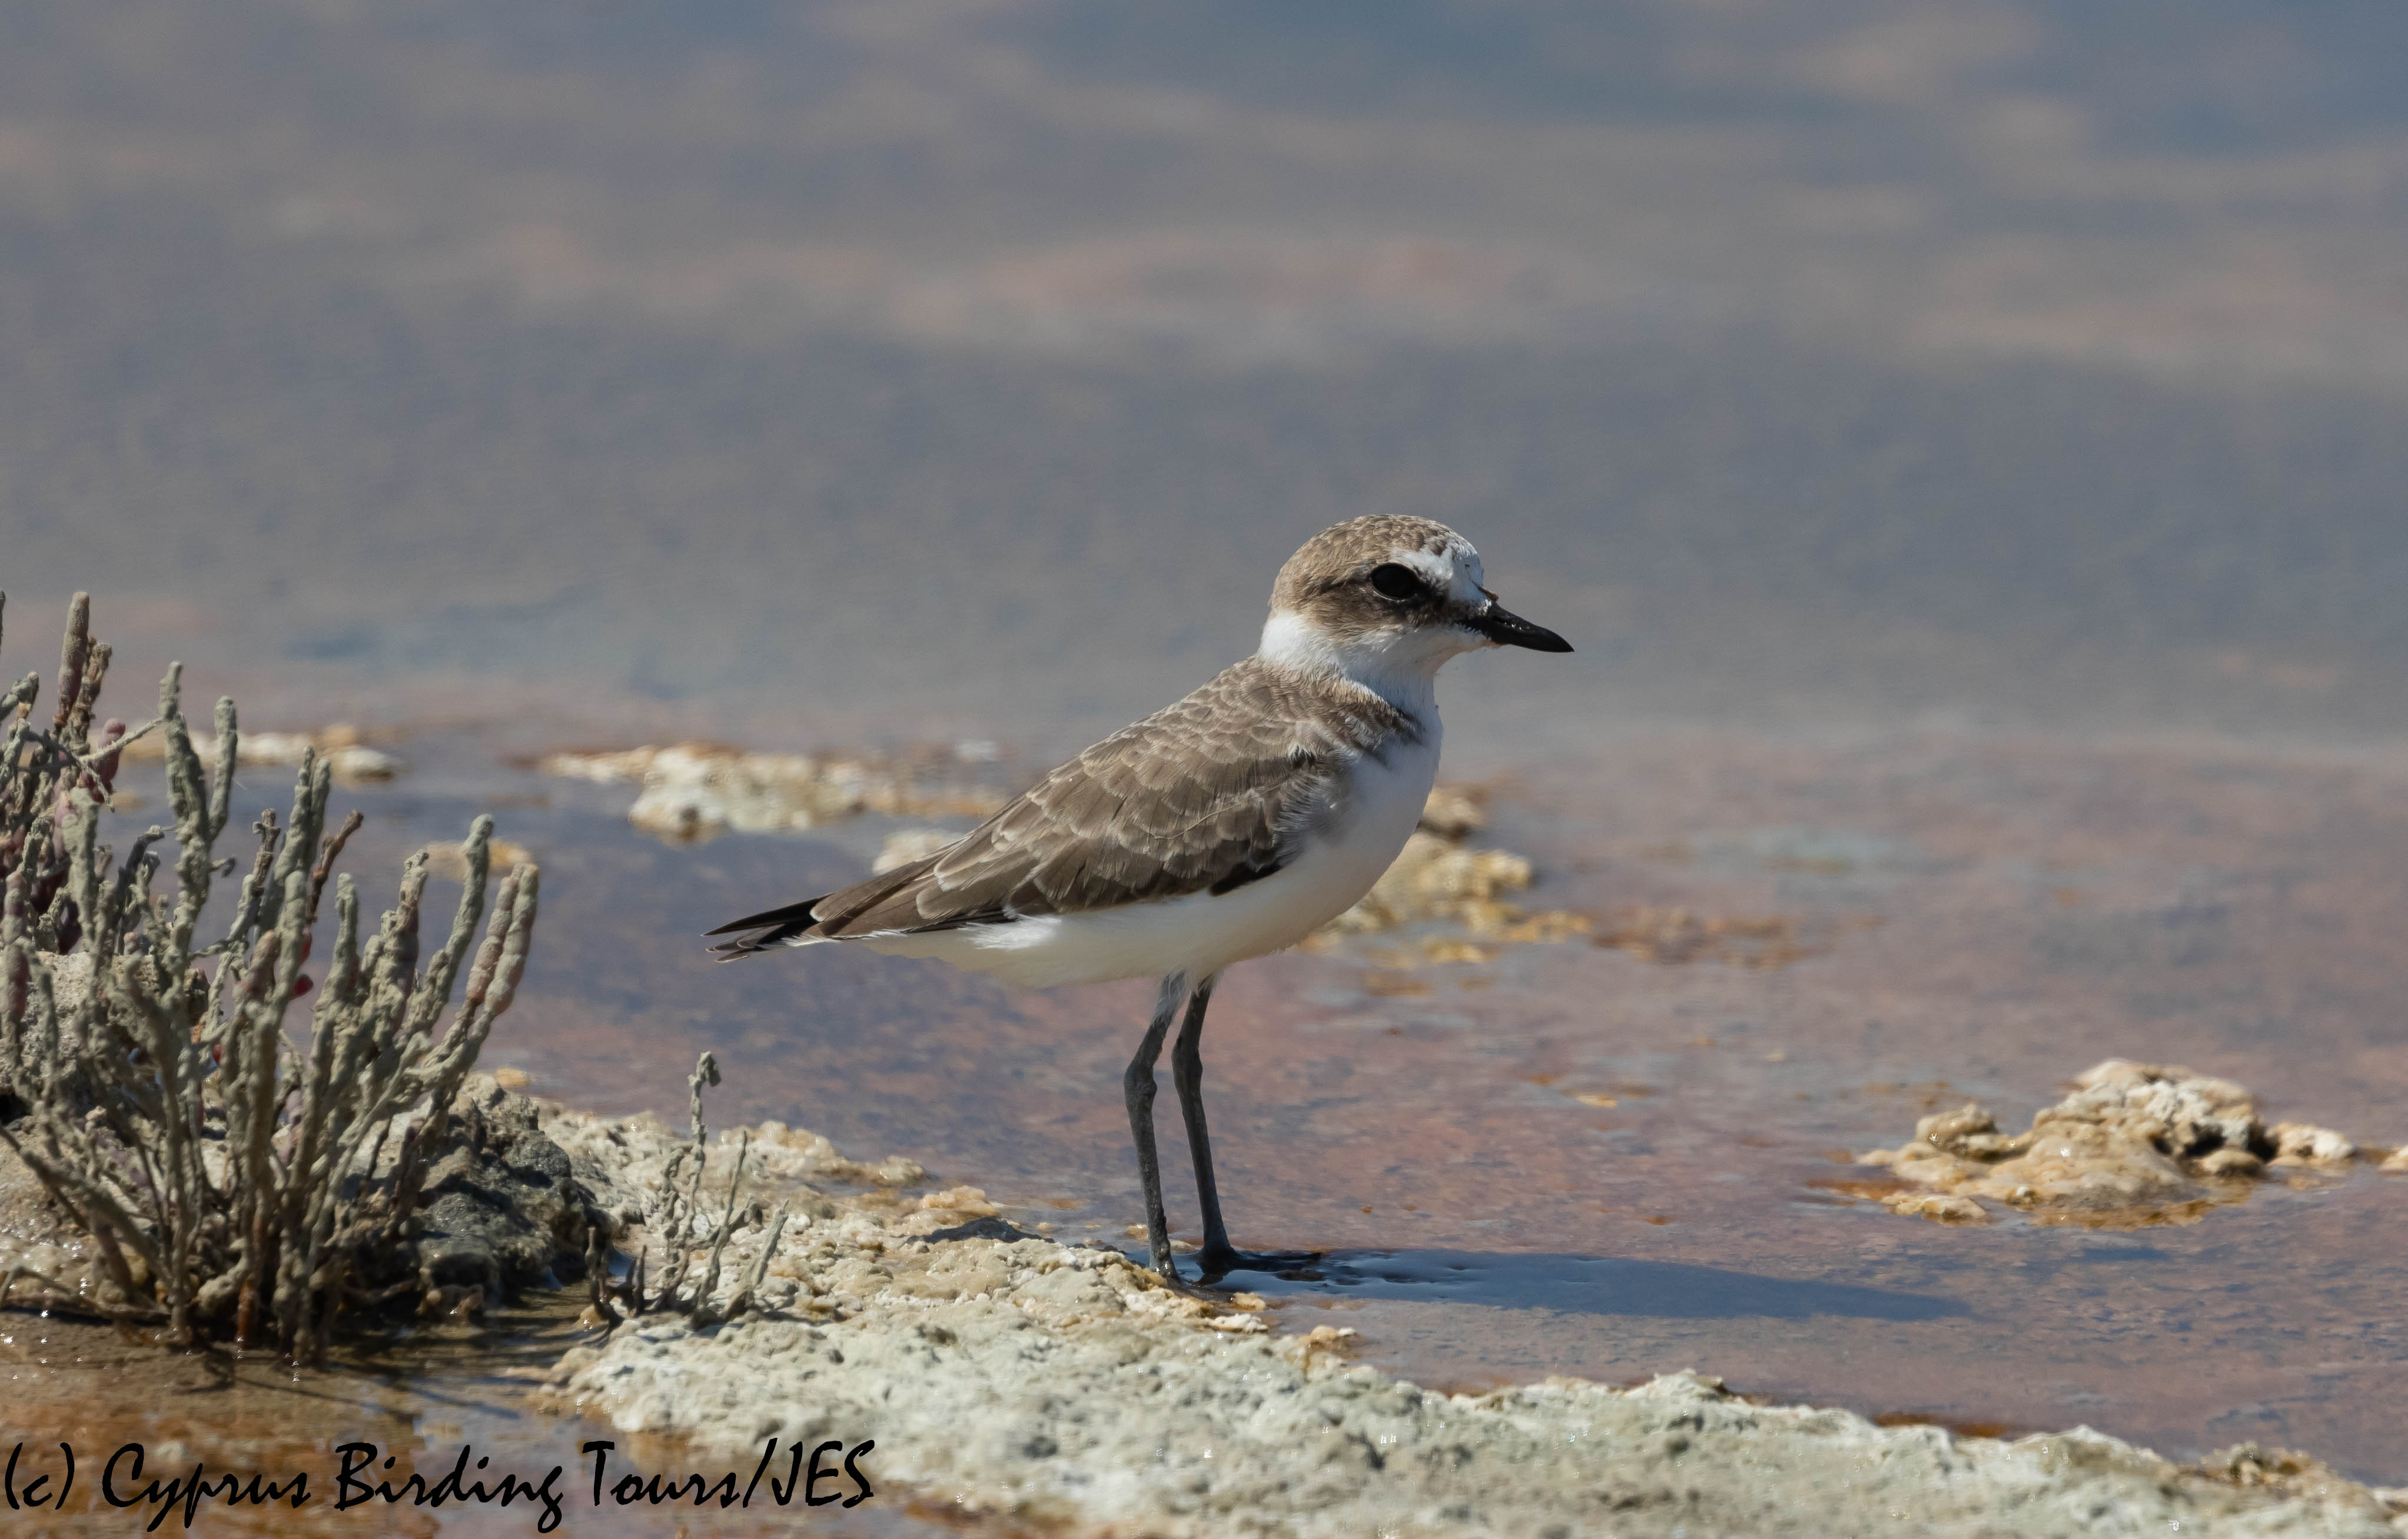 Kentish Plover, Lady's Mile 13th September 2019 (c) Cyprus Birding Tours